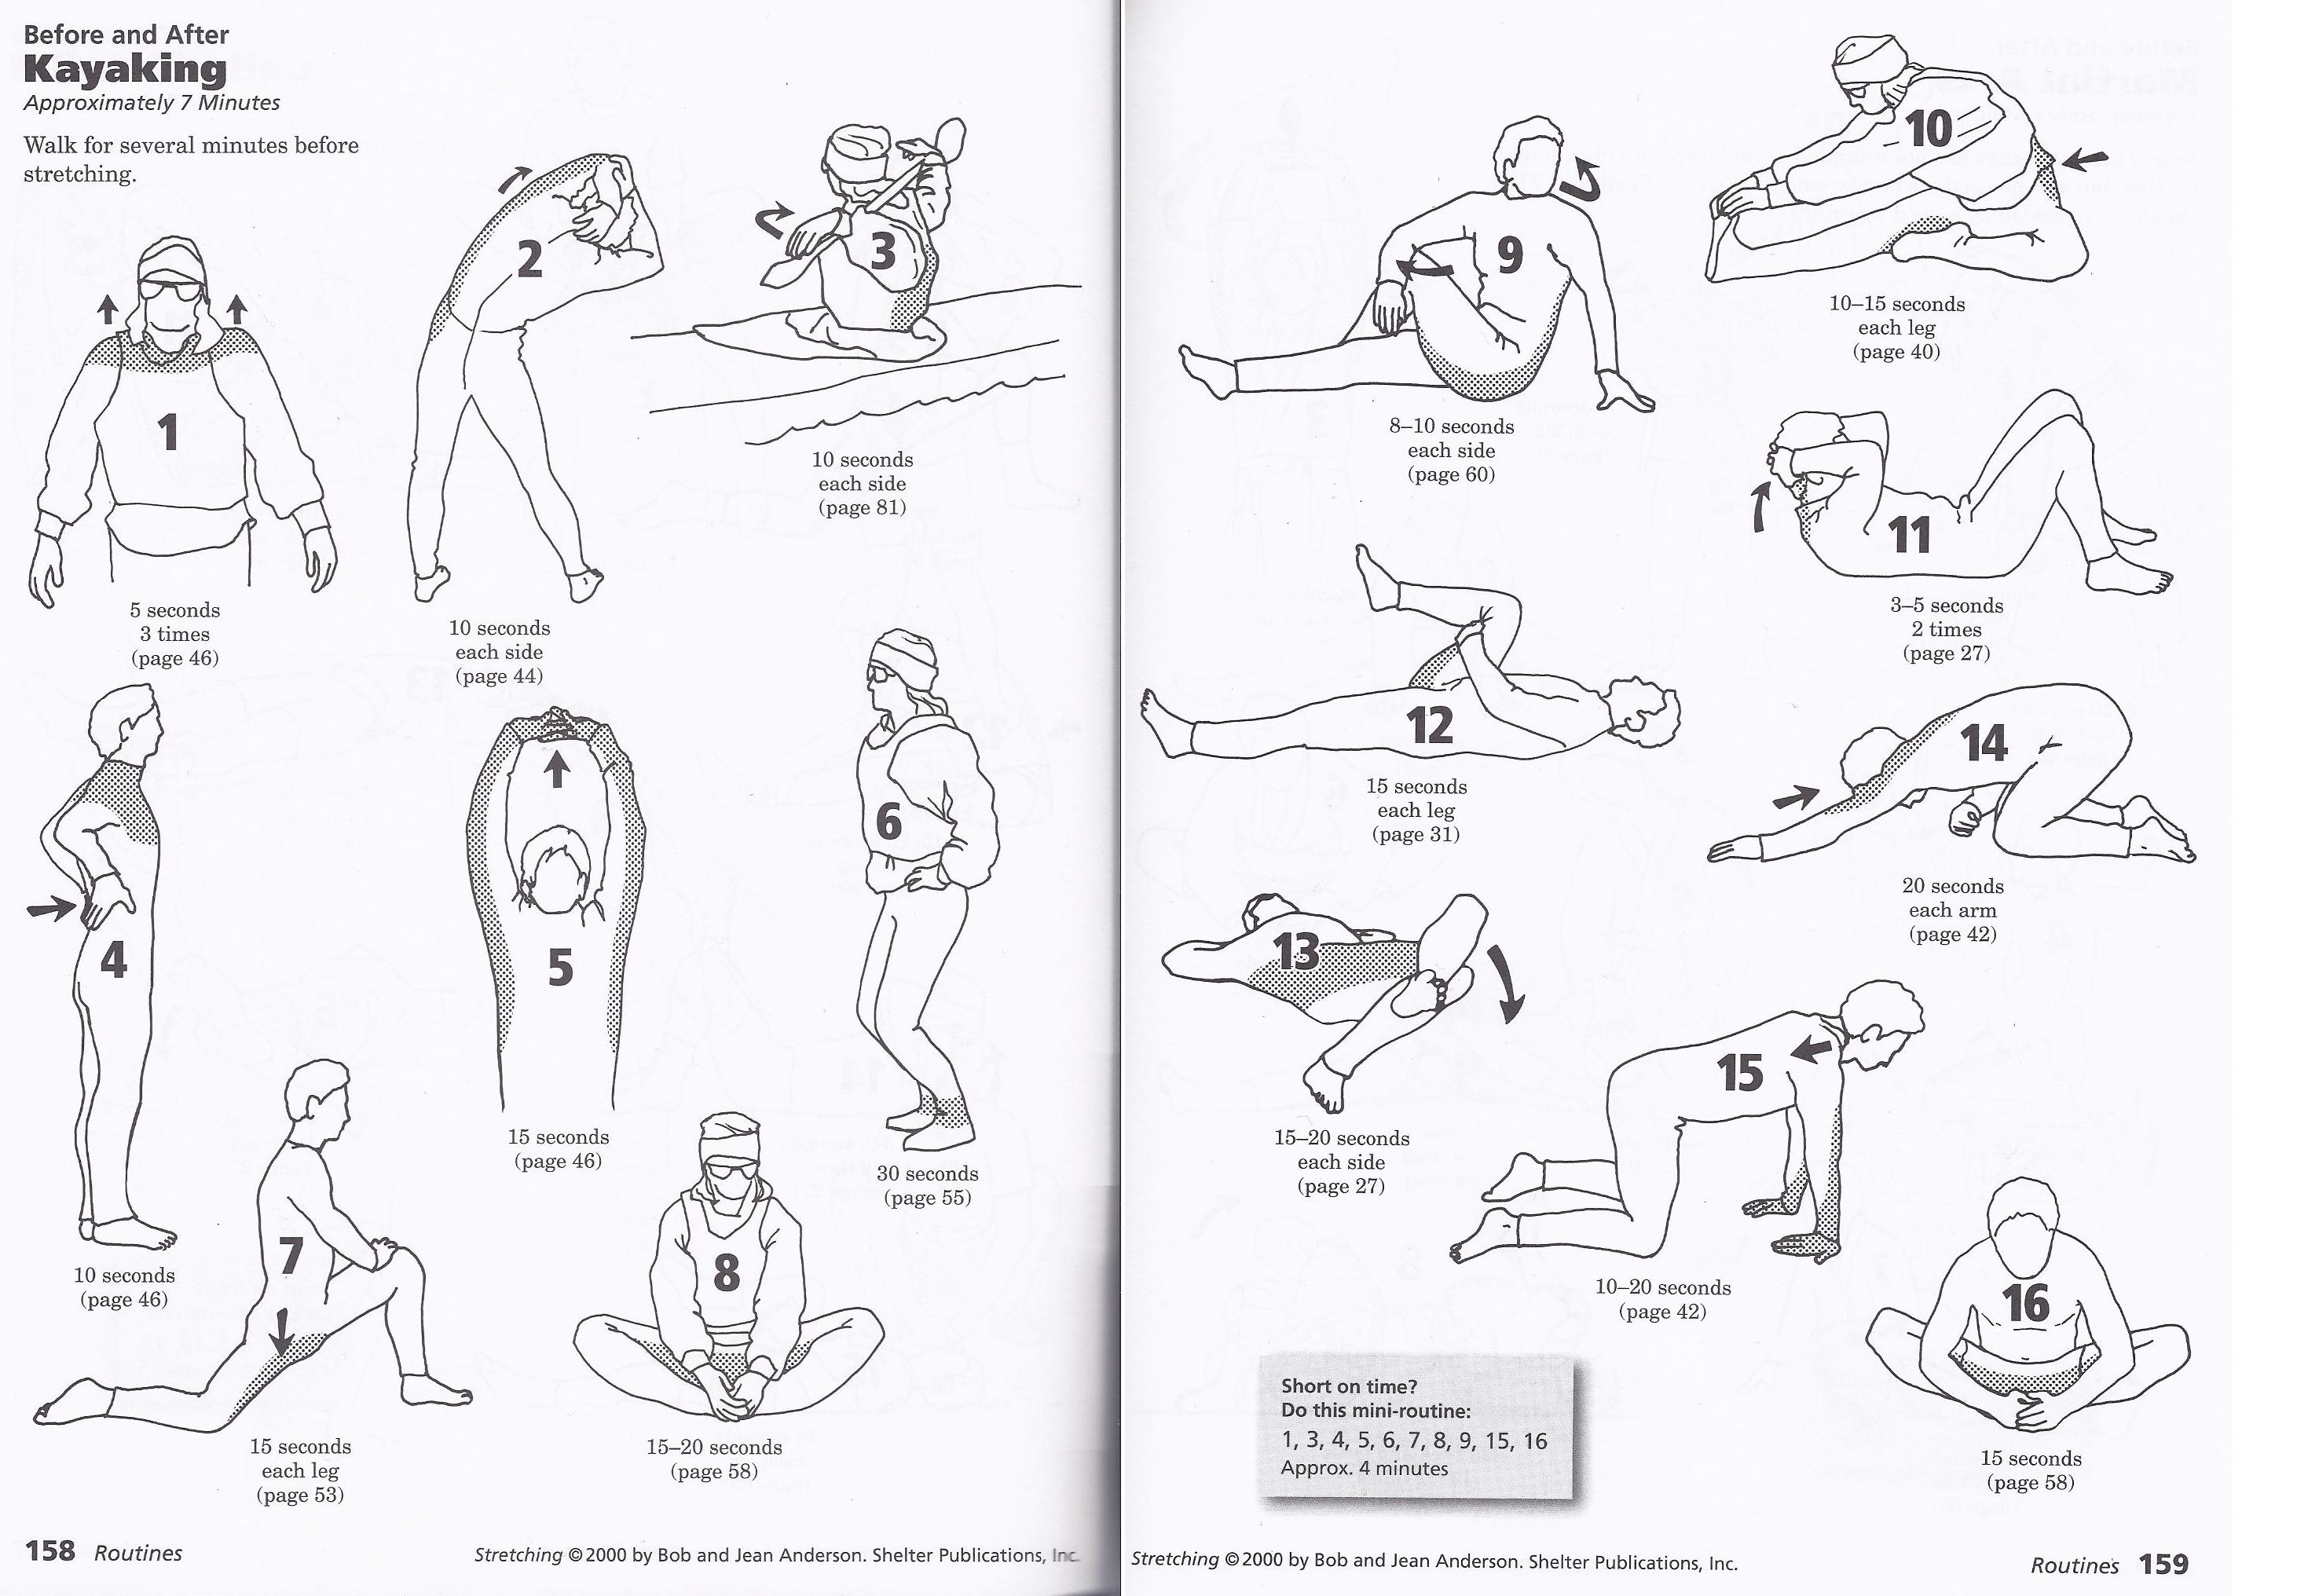 Common Sea Kayaking Injuries Muscles And Joints